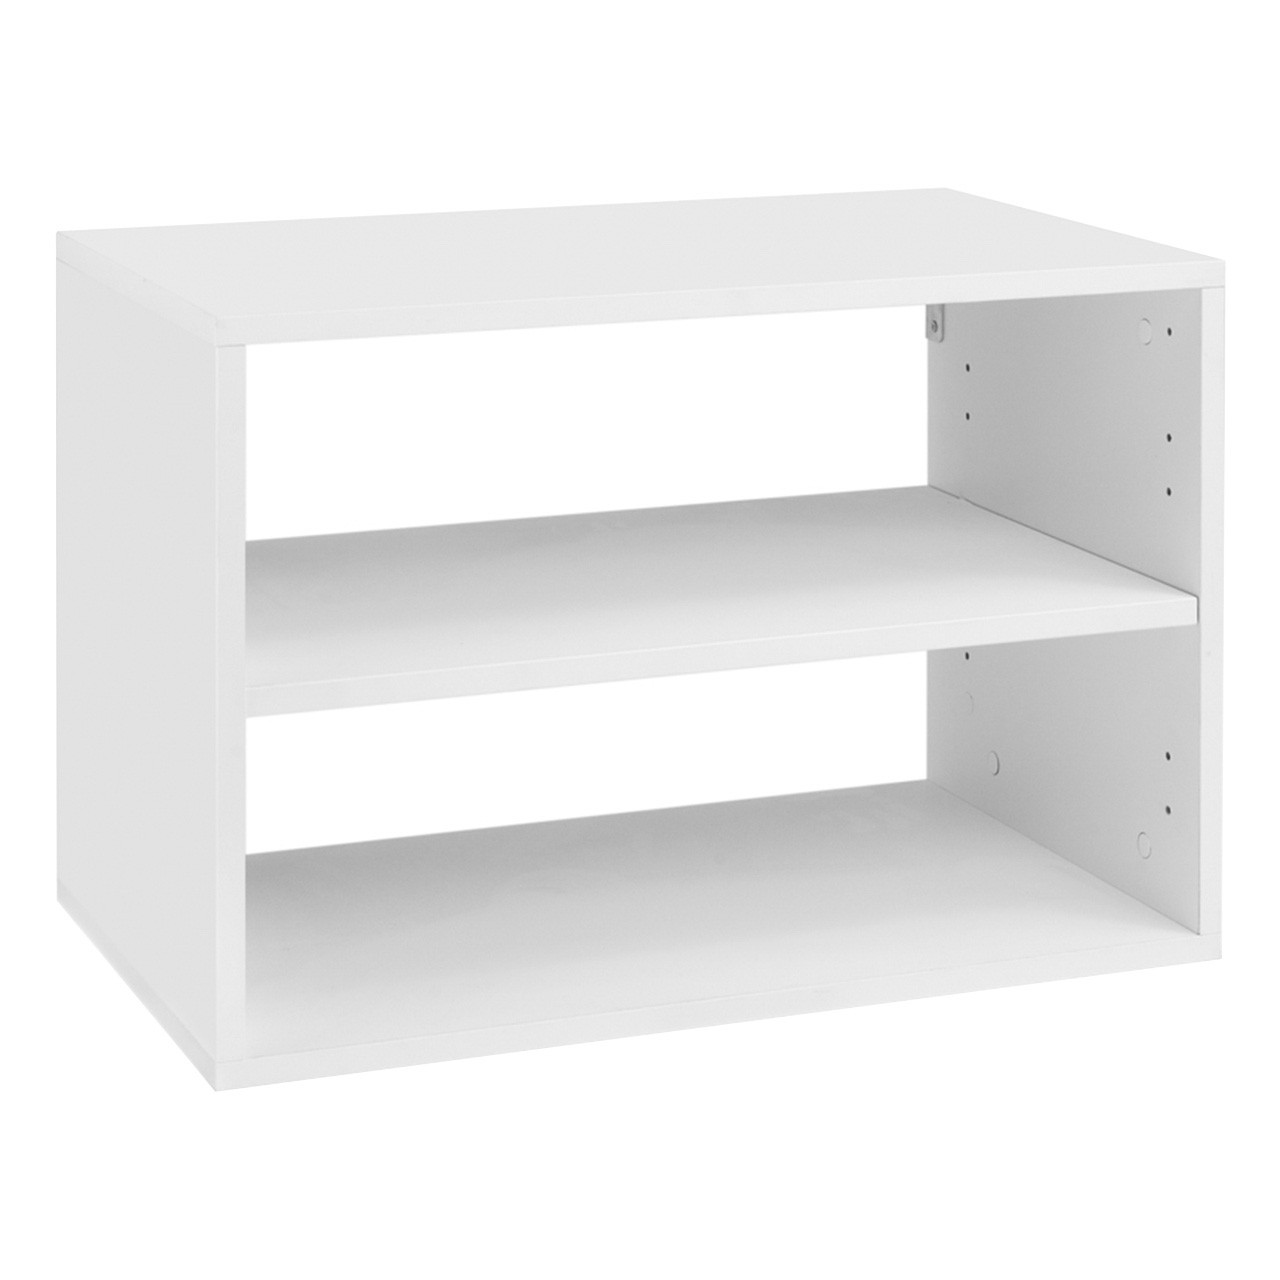 Big OBox Shelf Unit